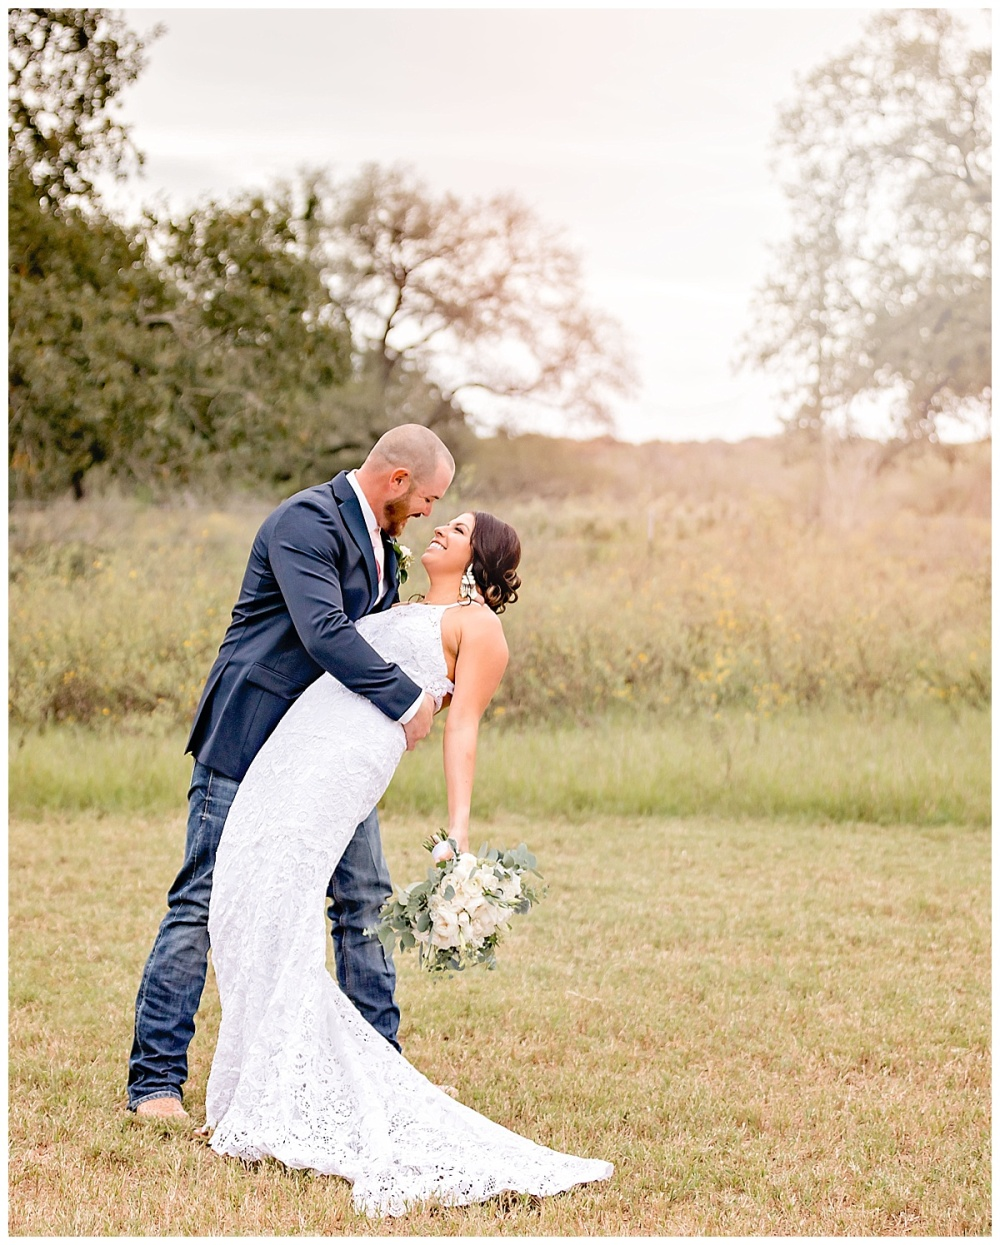 South-Texas-Wedding-Photographer-Rose-Gold-and-Navy-Theme-LaVernia-Bride-Groom-Carly-Barton-Photography_0072